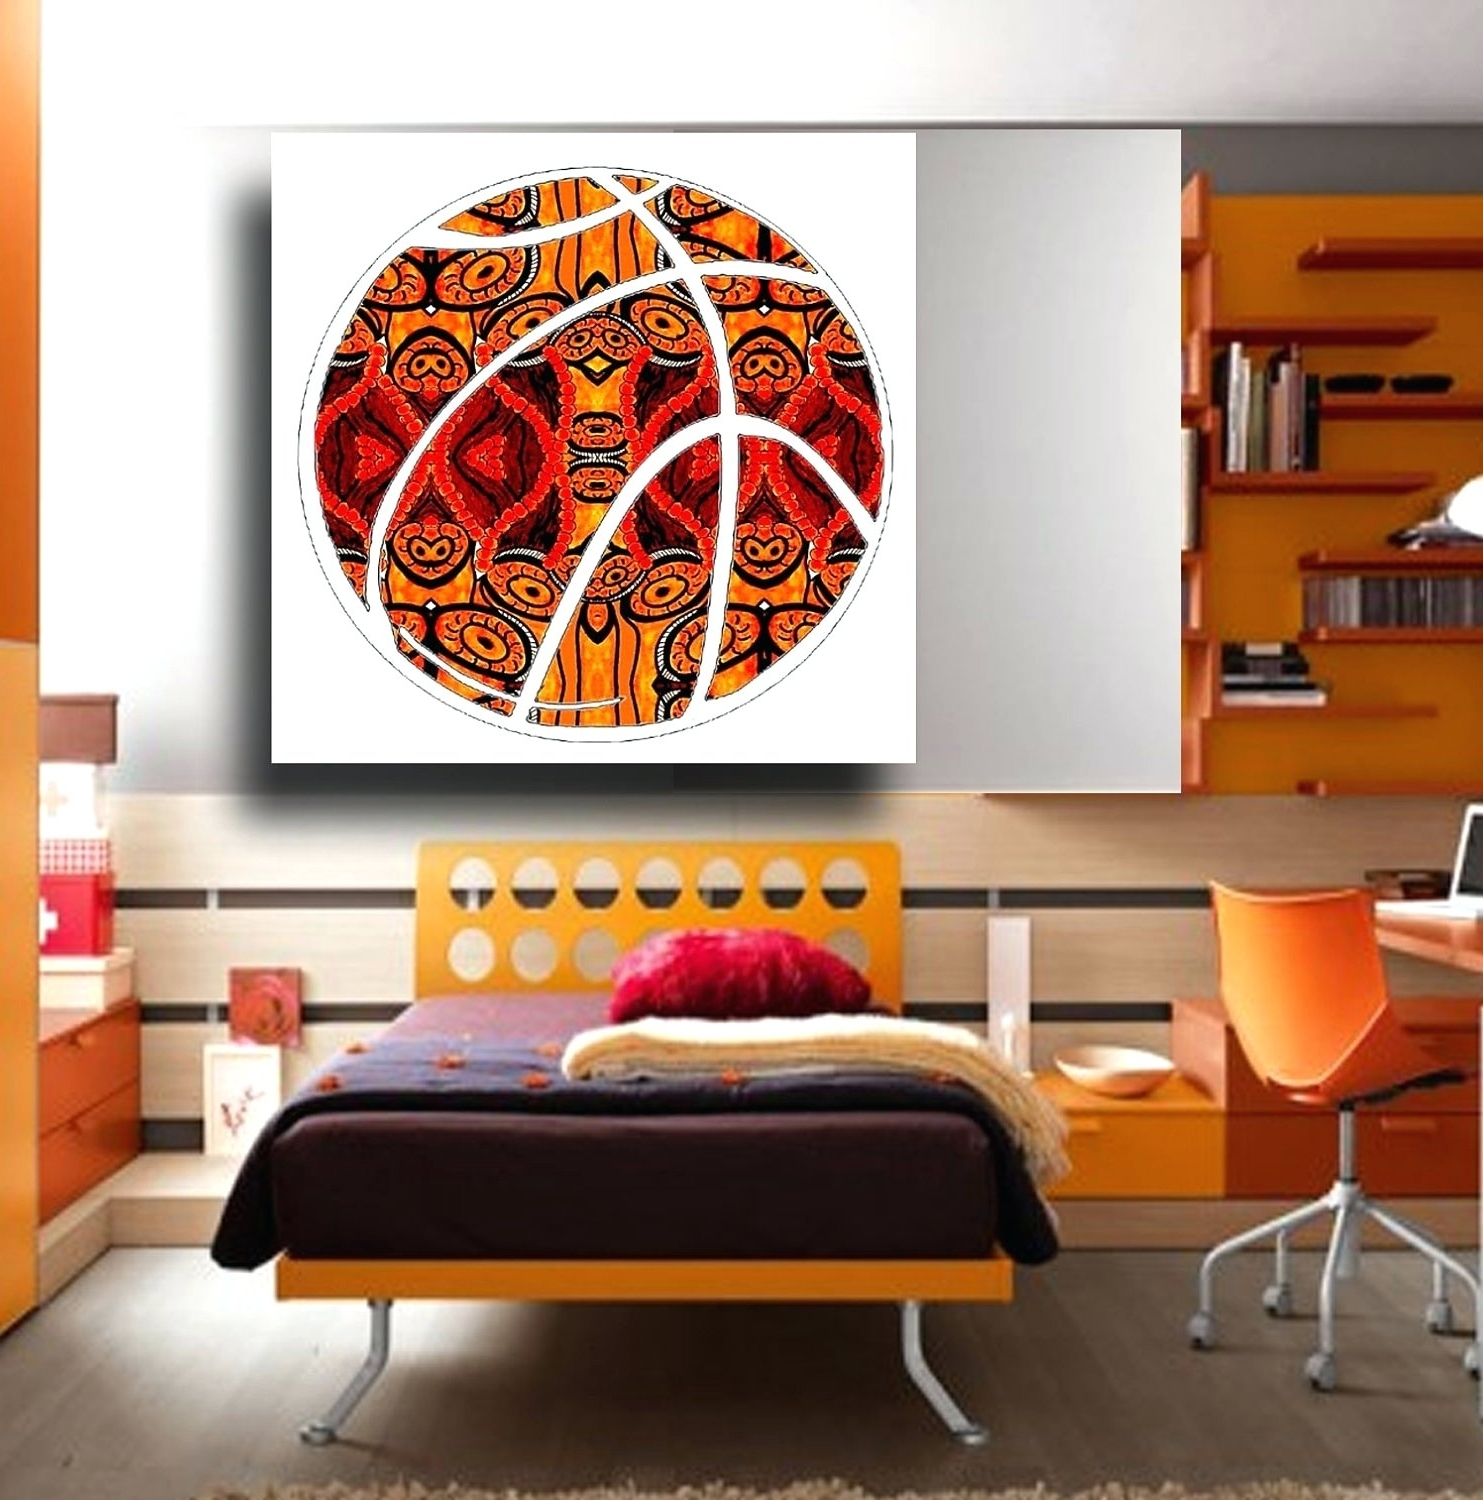 3D Wall Art Night Light Australia For Most Current Wall Arts ~ 3D Wall Art Nightlight Basketball Basketball Wall Art (View 2 of 15)